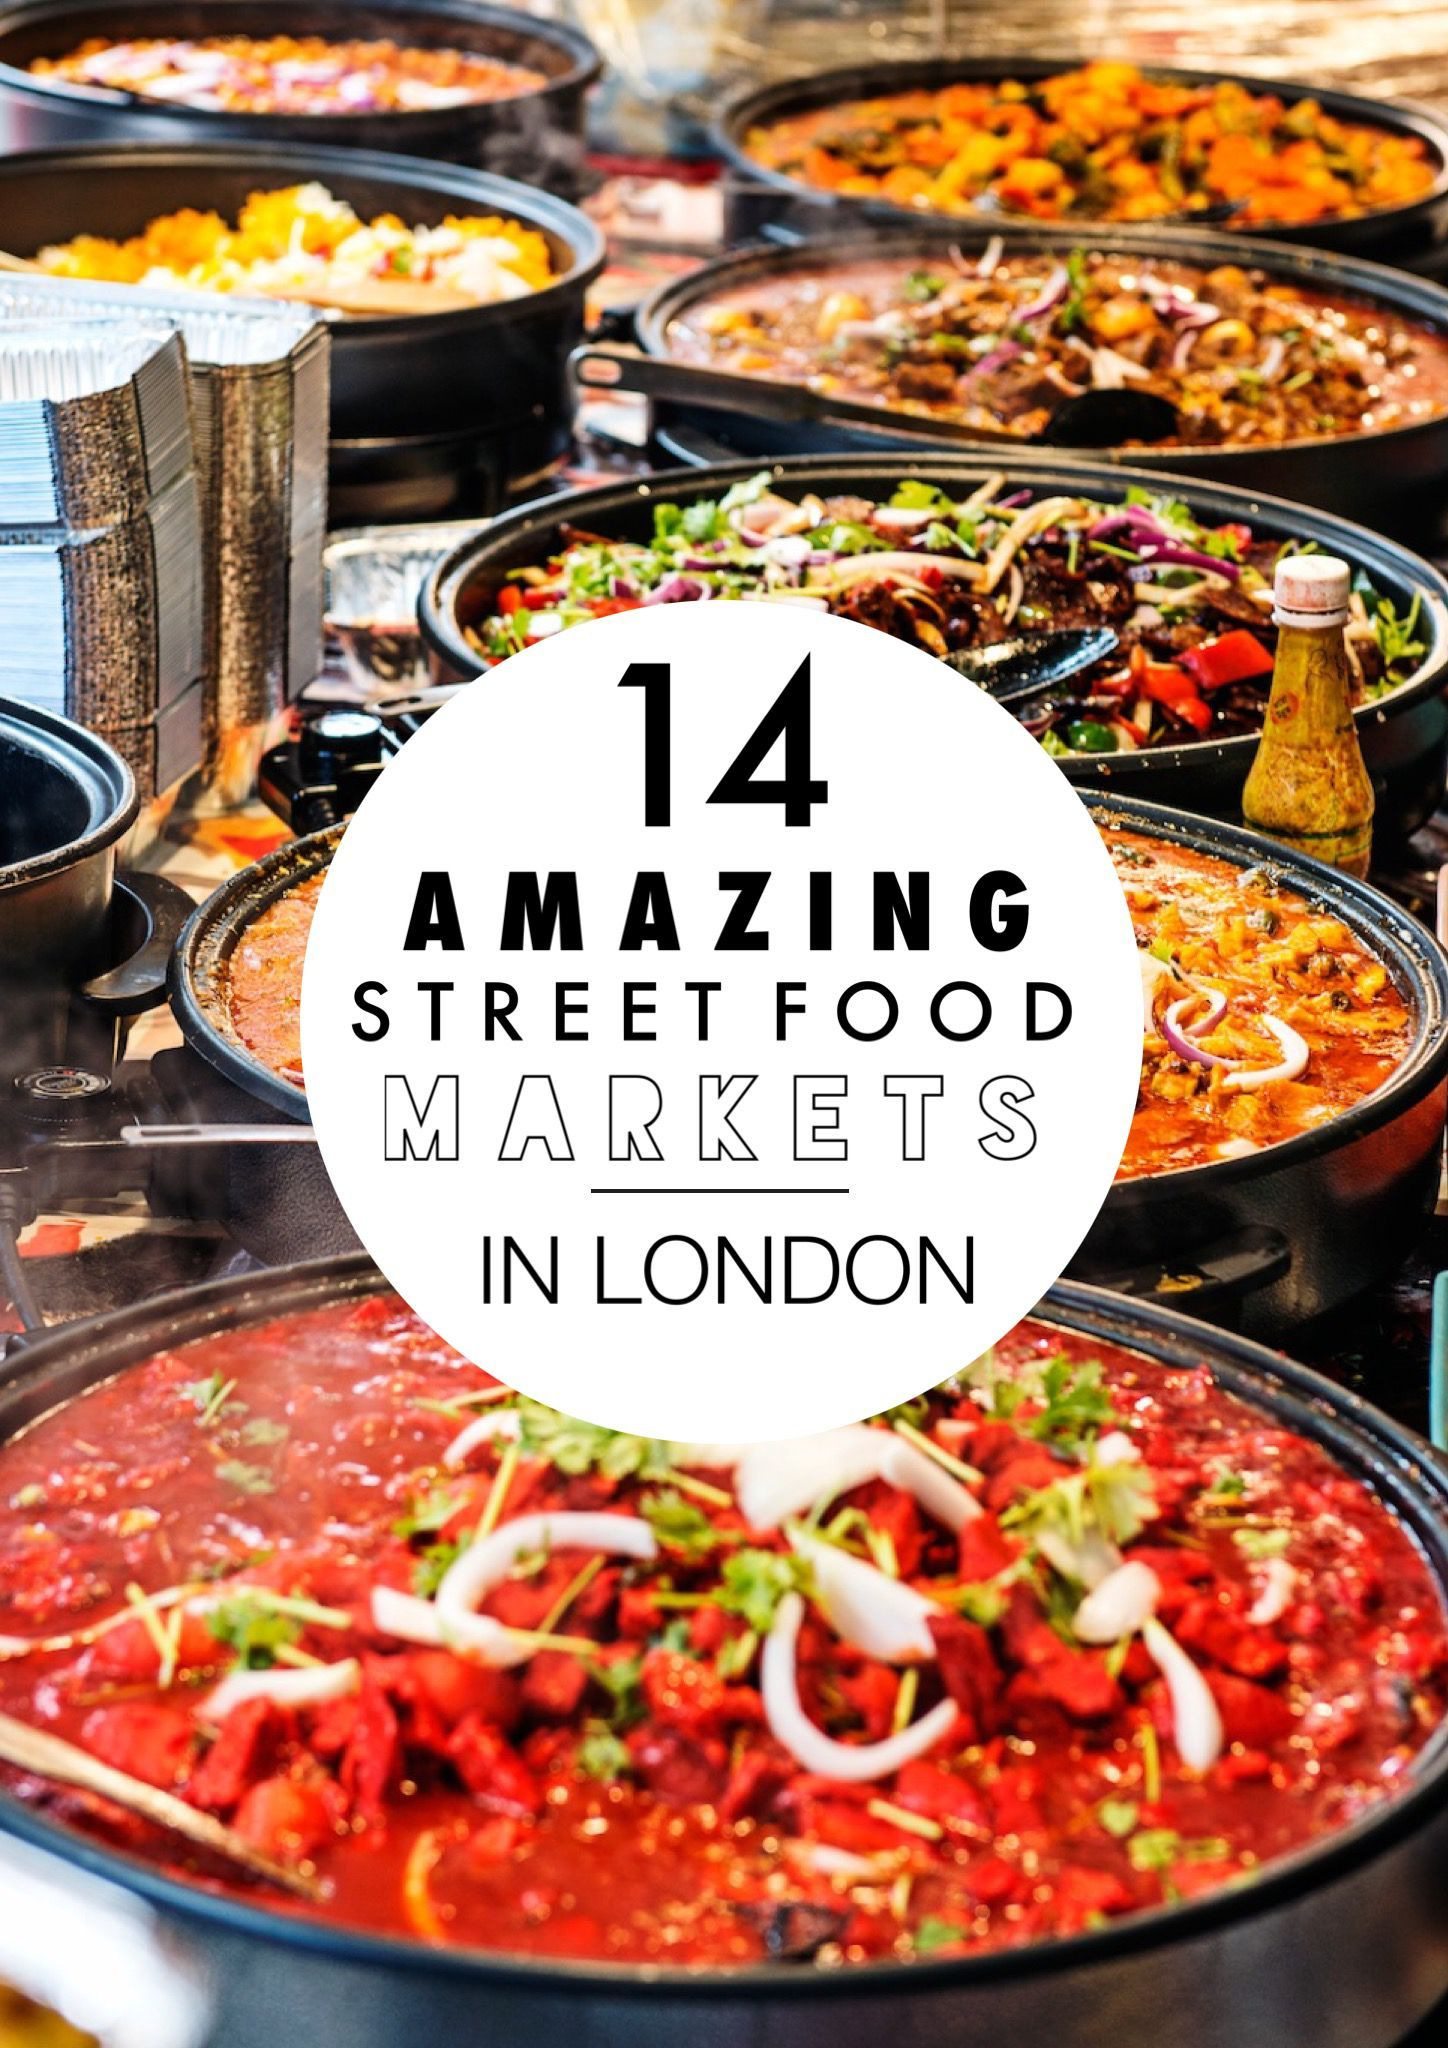 14 Amazing Street Food Markets You Have To Visit In London! - Hand Luggage Only - Travel, Food & Home Blog